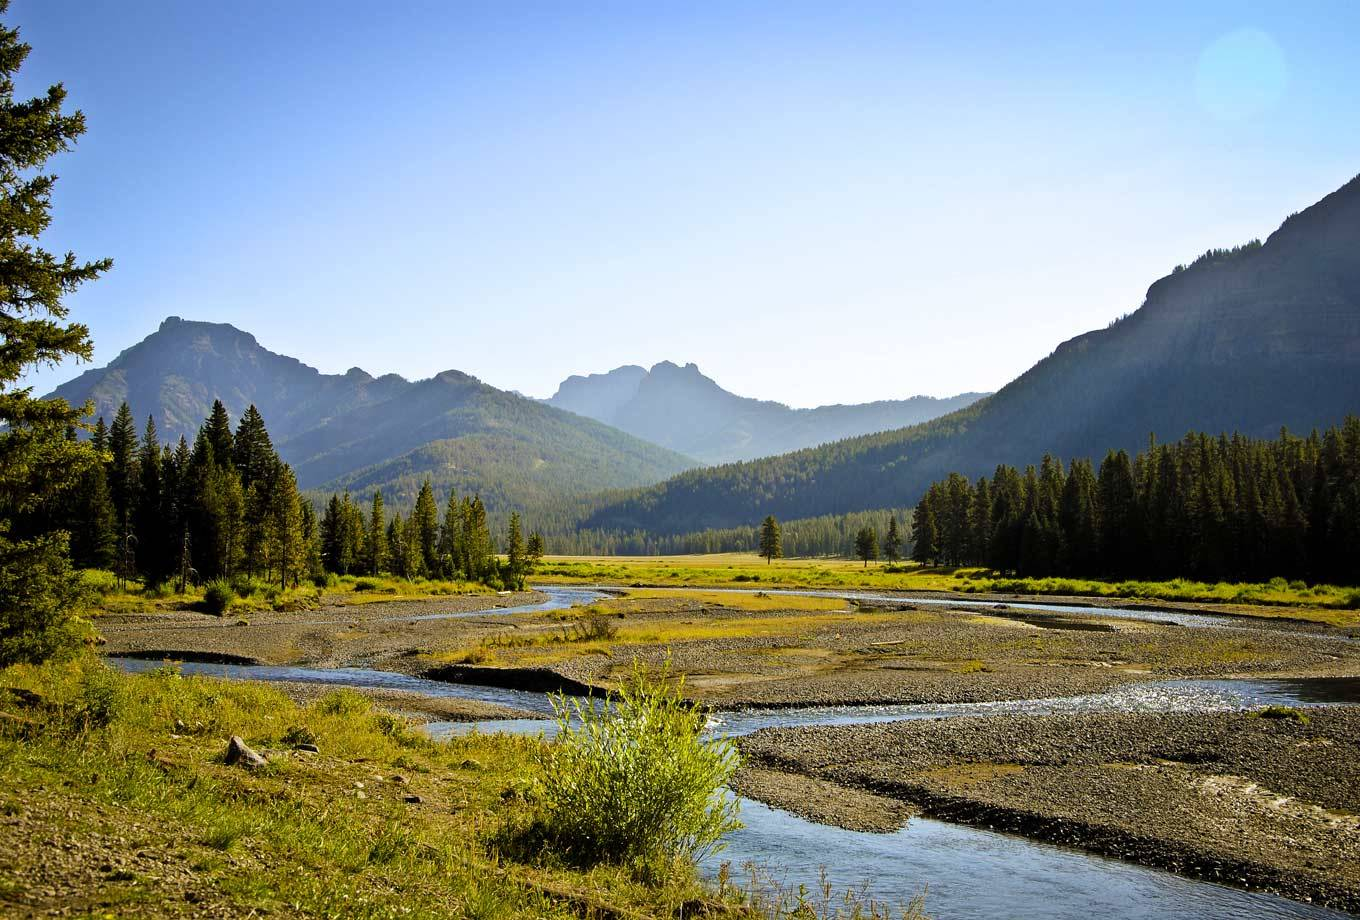 Yellowstone National Park's Lamar Valley in summer